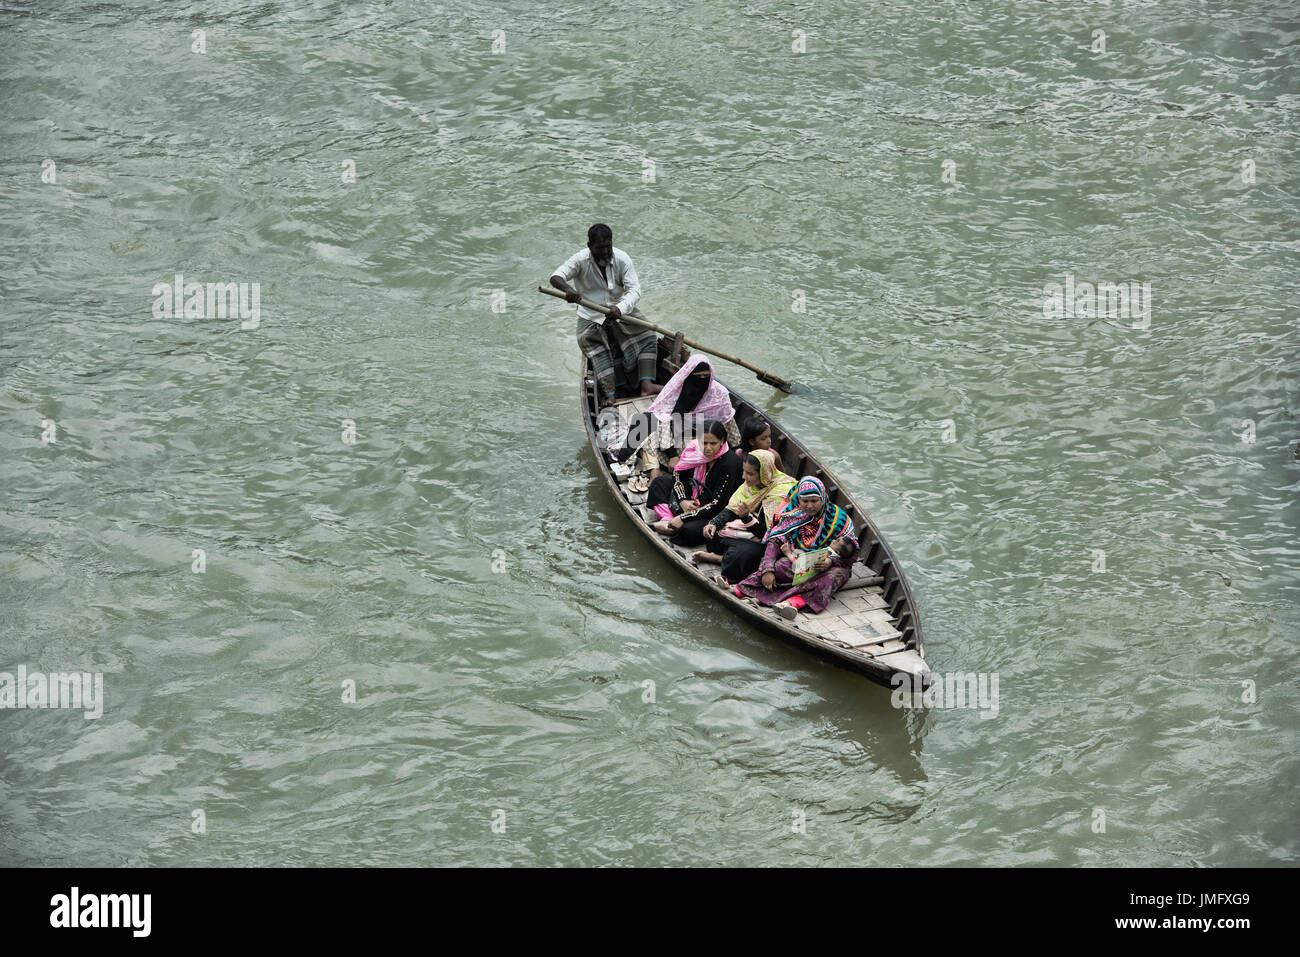 Rowboat on the Buriganga River, Dhaka, Bangladesh - Stock Image